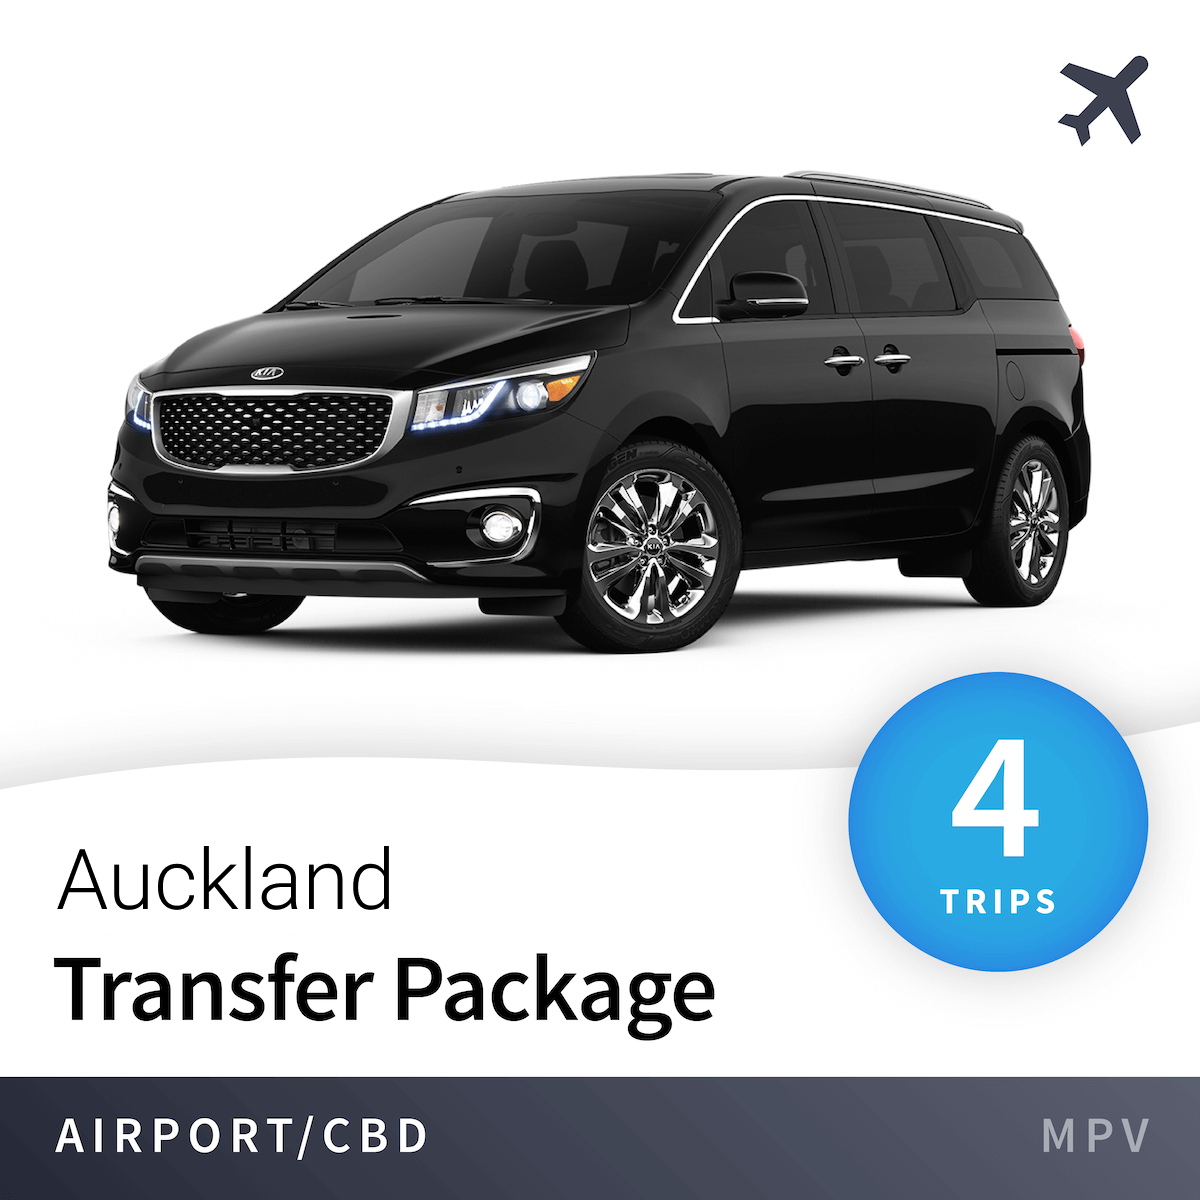 Auckland Airport Transfer Package – MPV (4 Trips) 1